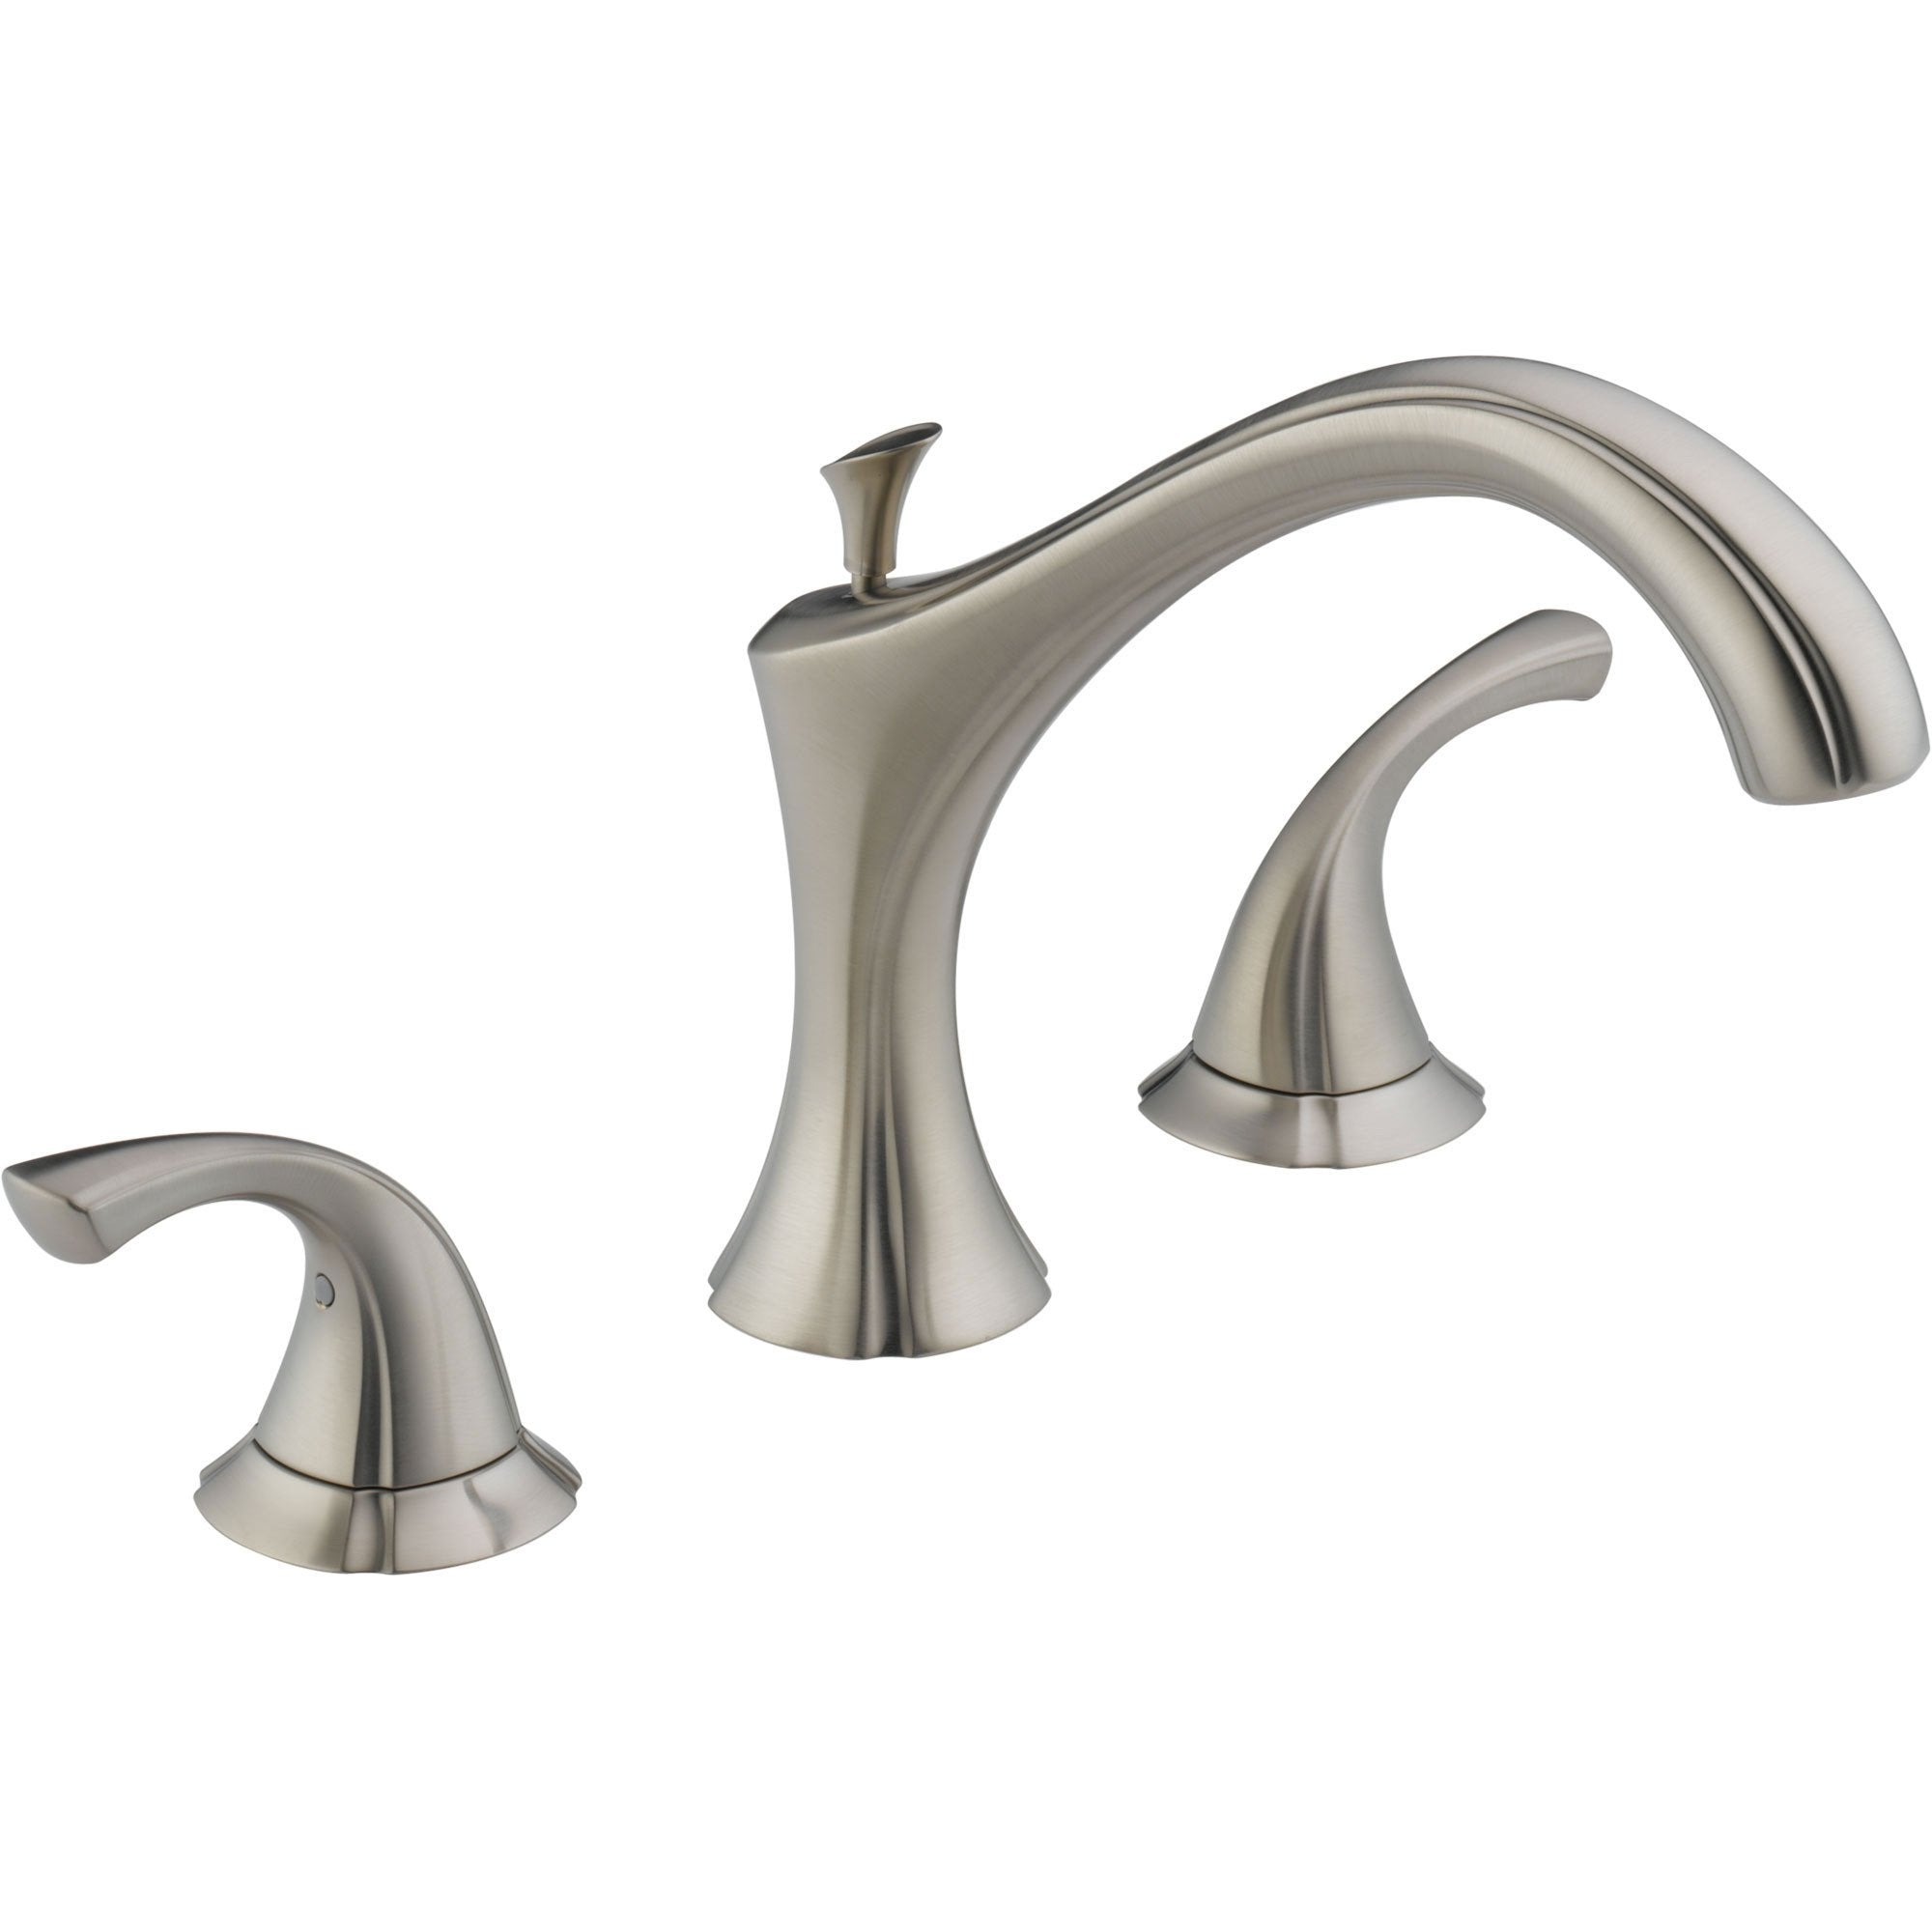 Delta Addison Widespread Stainless Steel Finish Roman Tub Faucet Trim Kit 488983